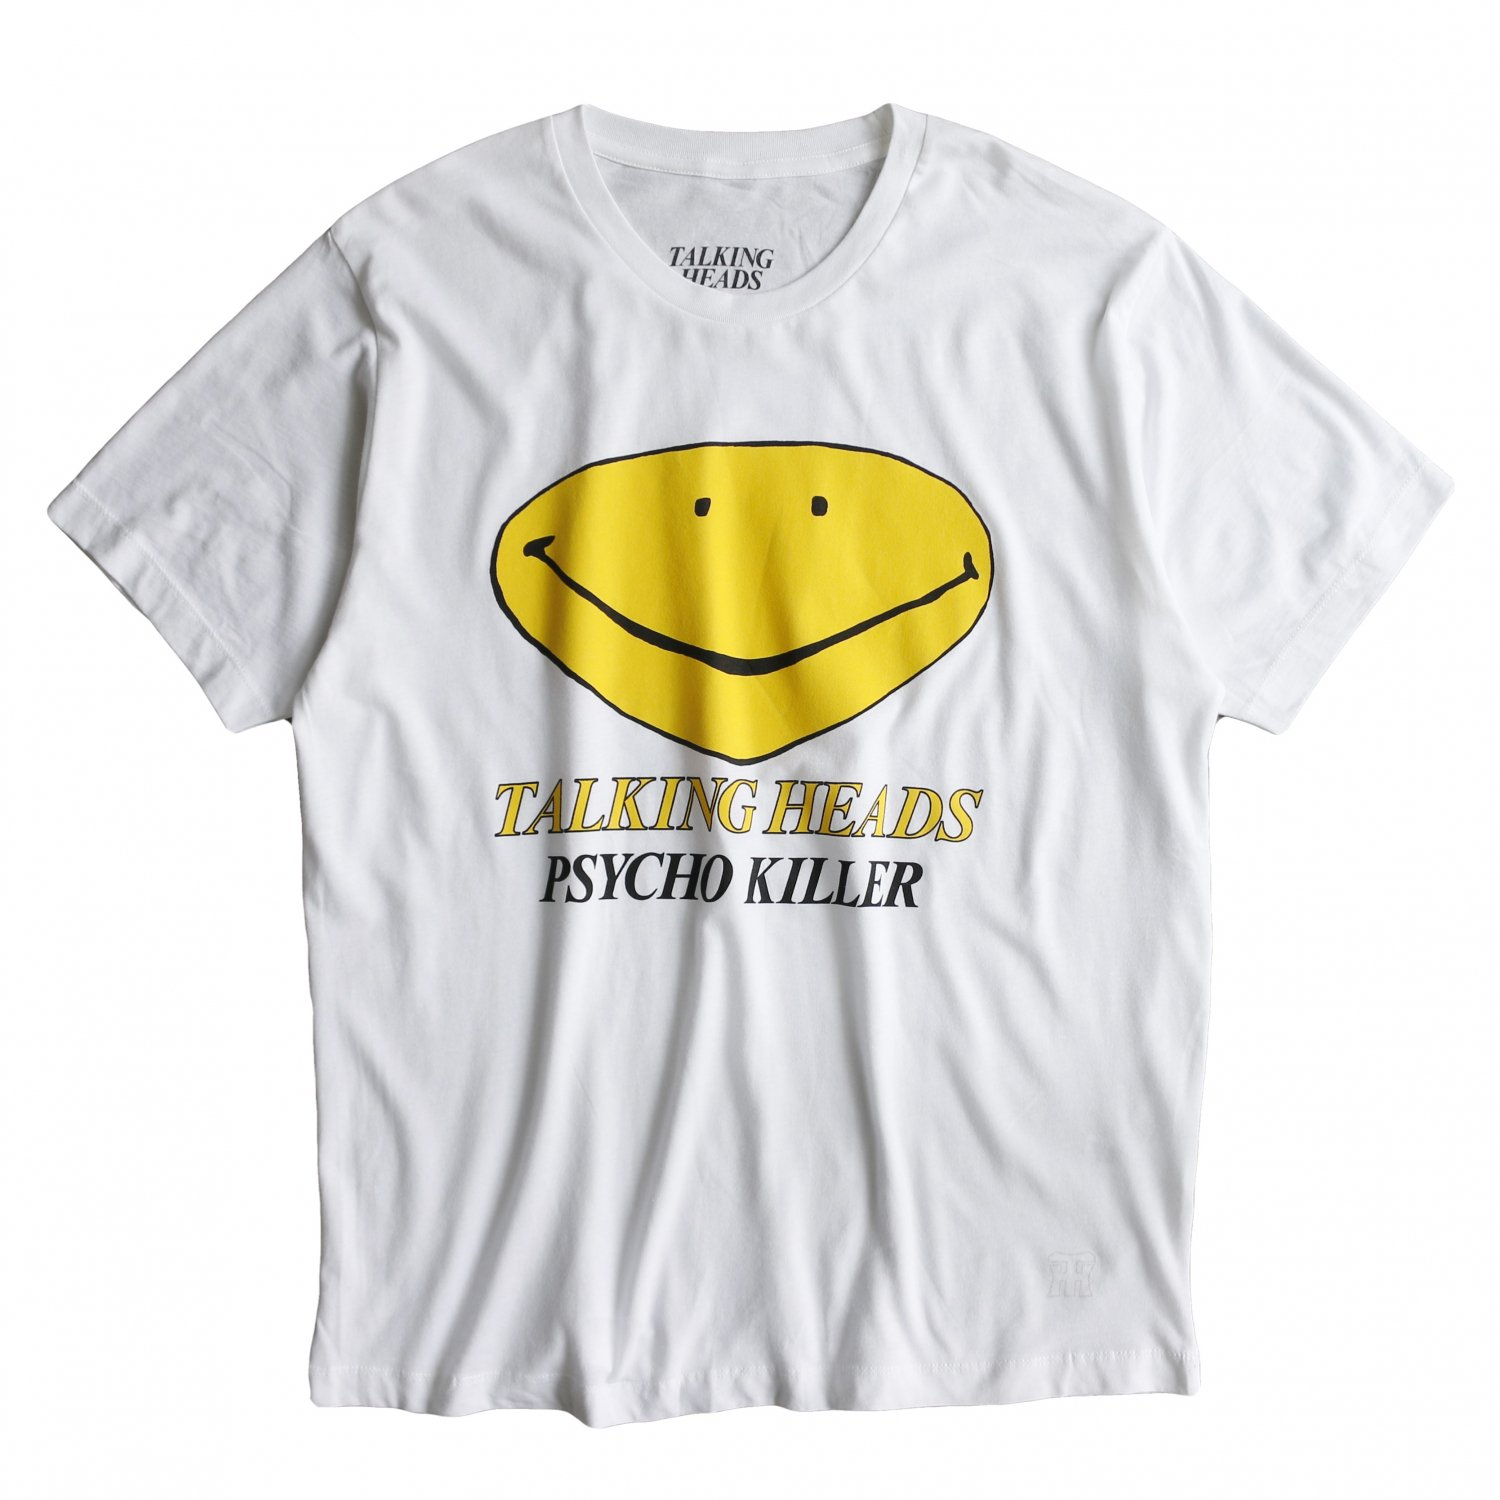 <img class='new_mark_img1' src='https://img.shop-pro.jp/img/new/icons8.gif' style='border:none;display:inline;margin:0px;padding:0px;width:auto;' />Music Tee / S/S TEE TALKING HEADS